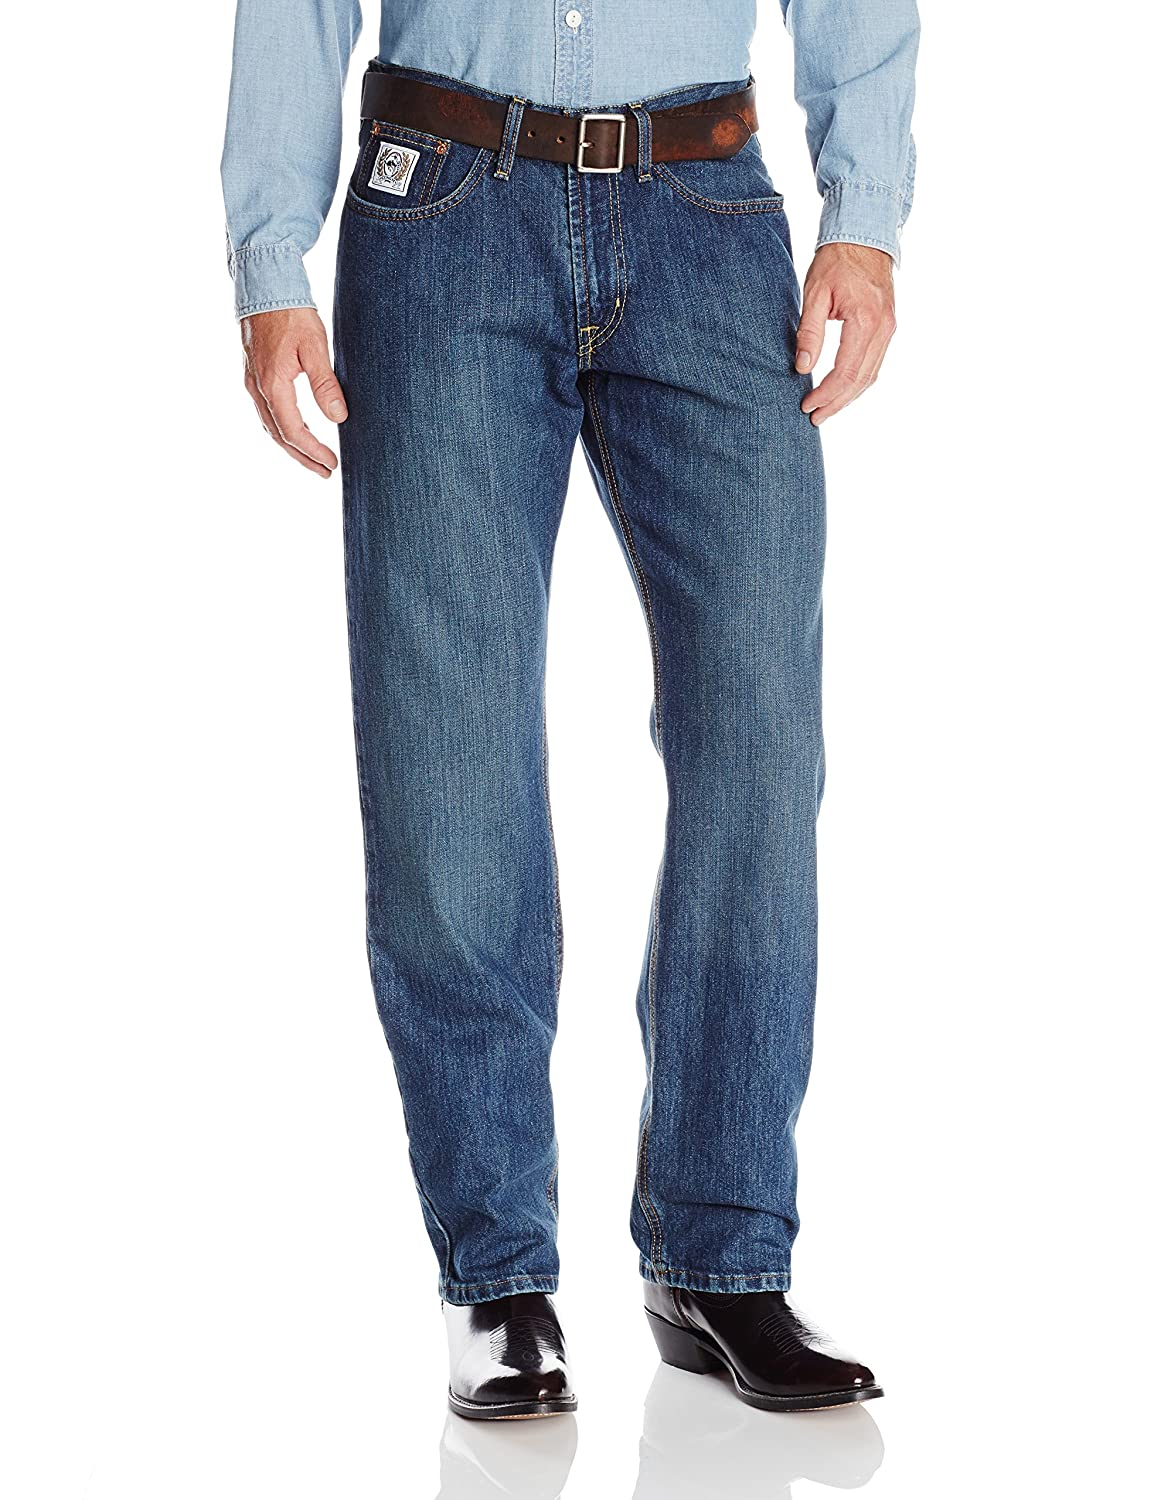 Cinch Men's White Label Relaxed Fit Jean Cinch Men's Jeans 010784